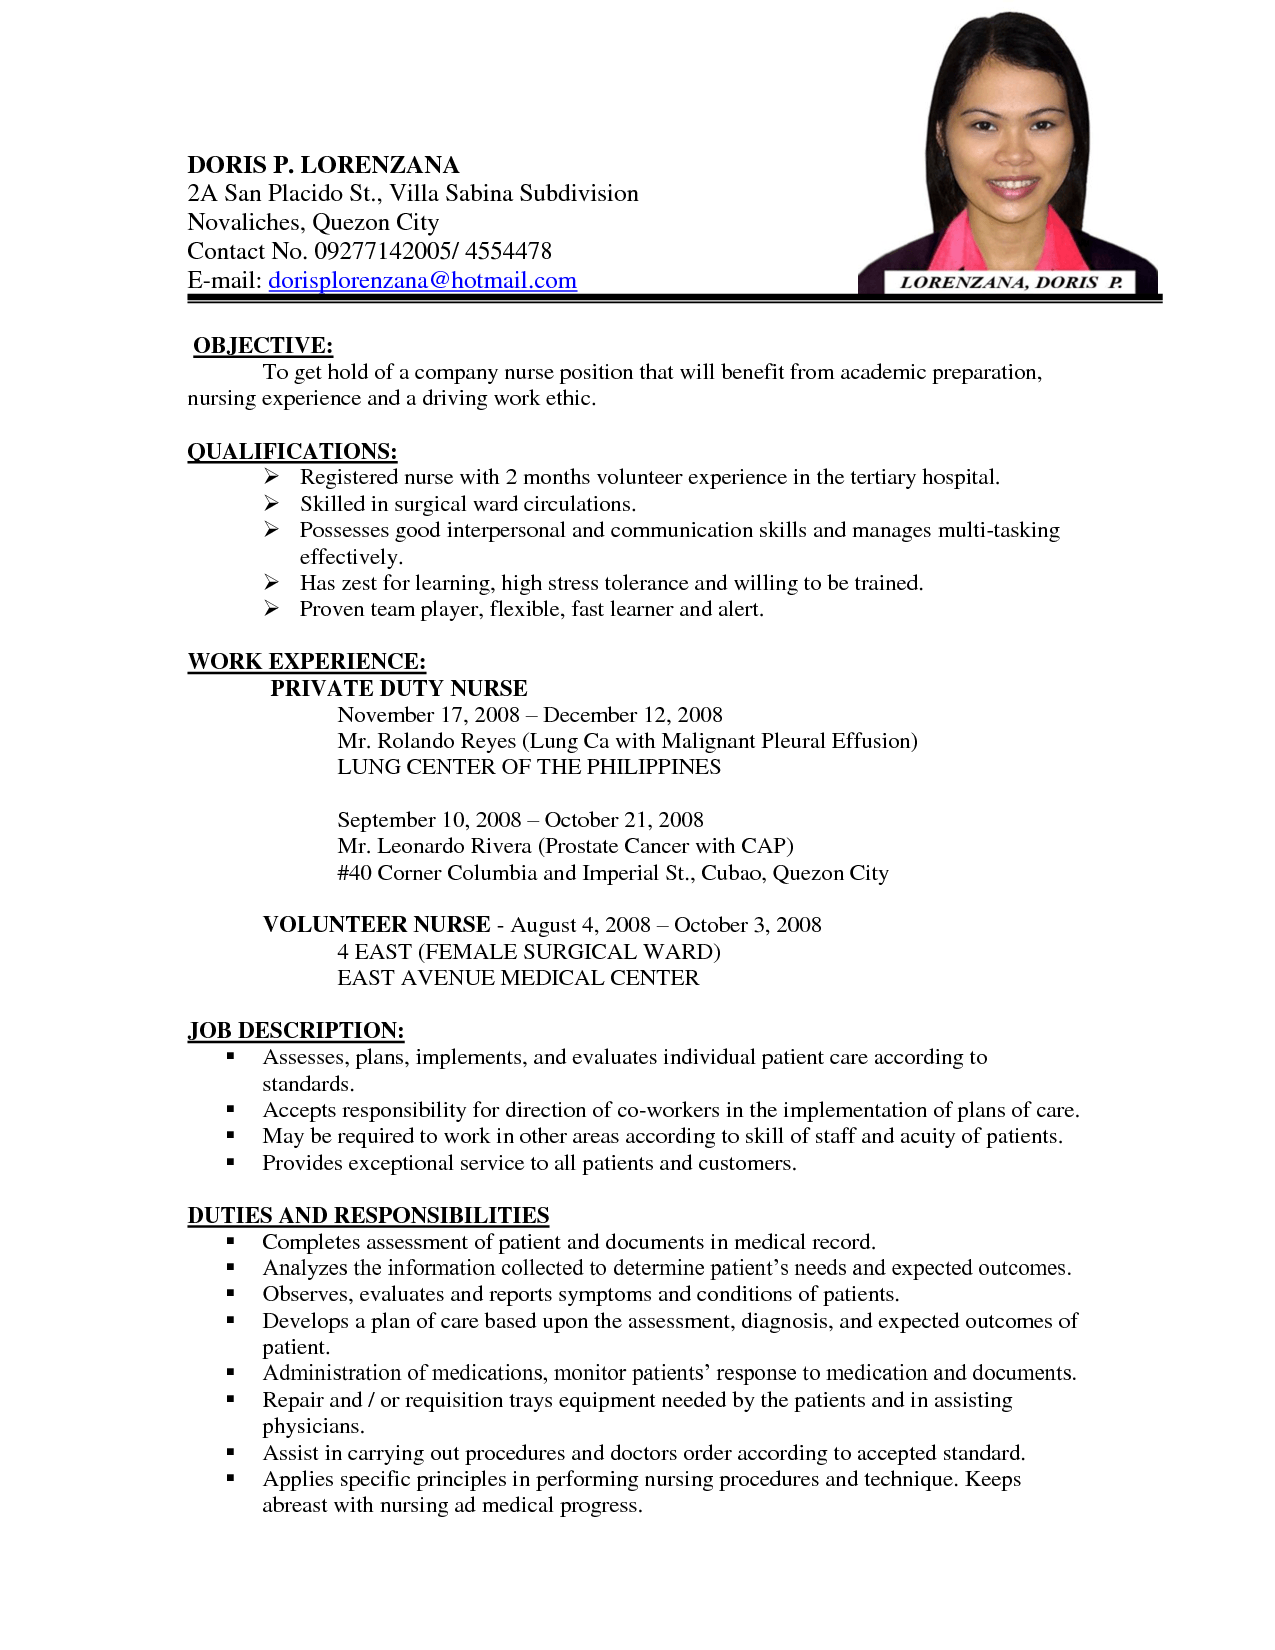 Delightful Image Result For Curriculum Vitae Format For A Nurse And Example Of Resume For Nurses